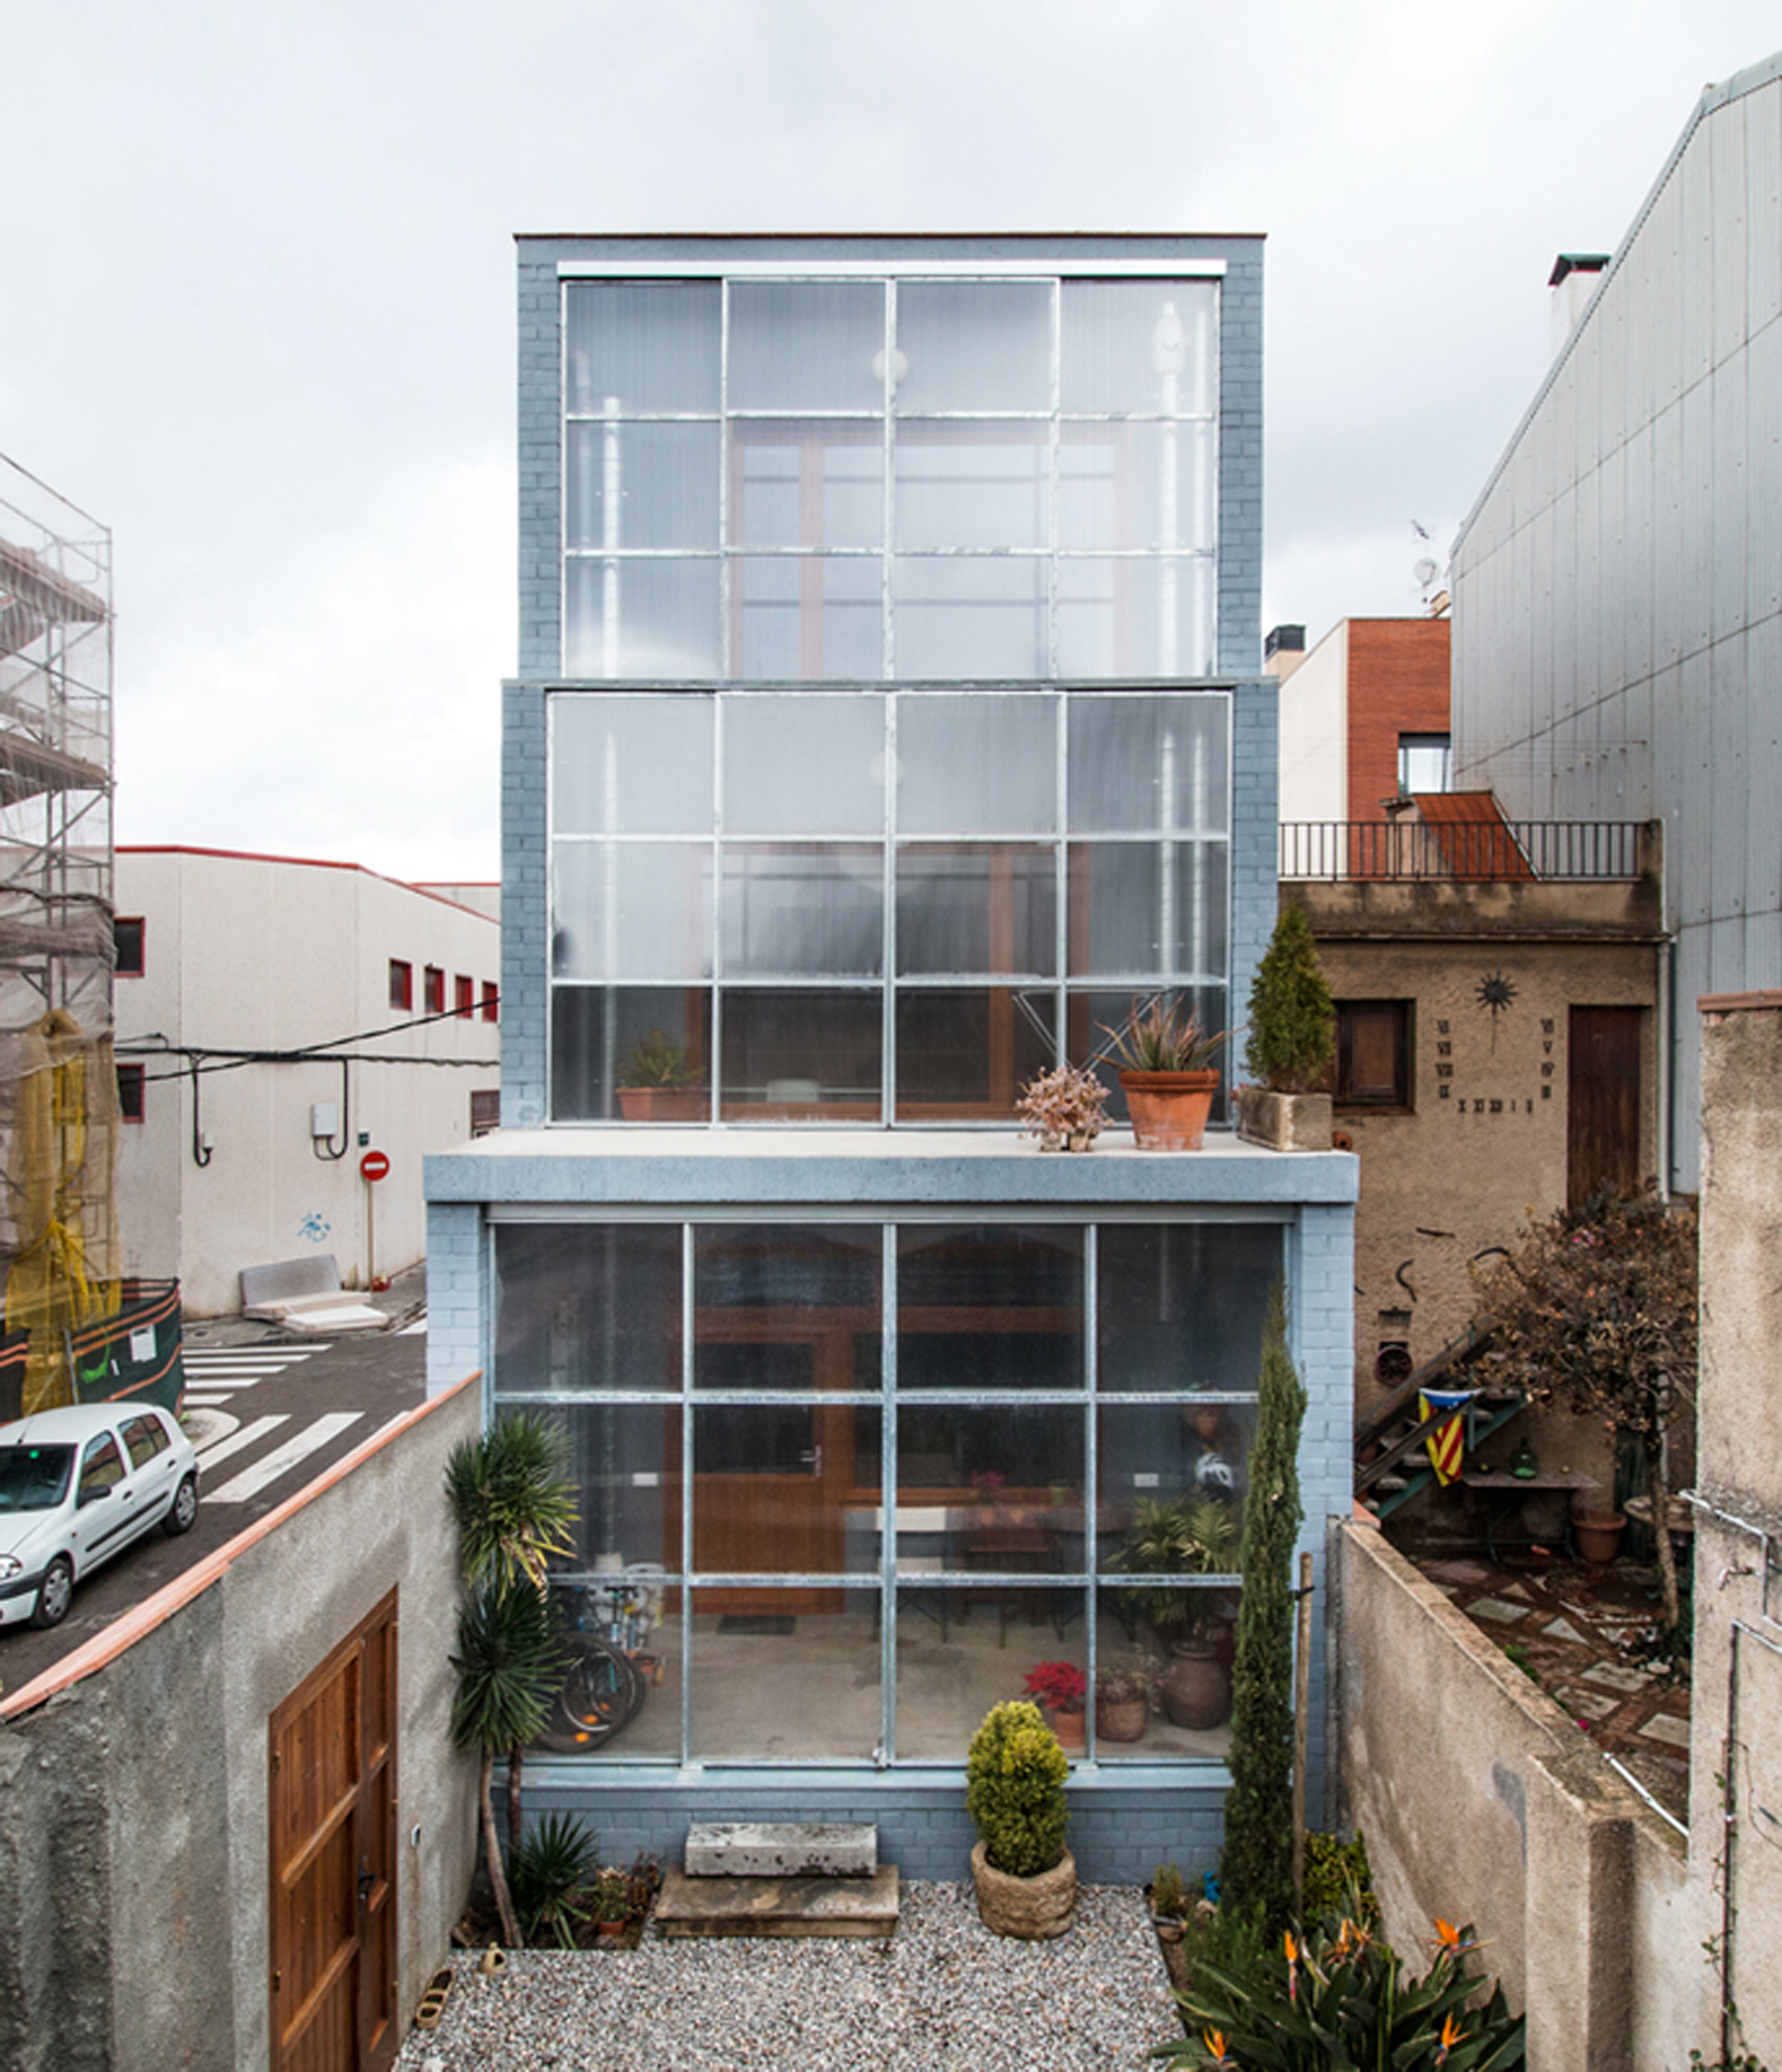 Sliding polycarbonate panels open up facade of Barcelona house by H Arquitectes